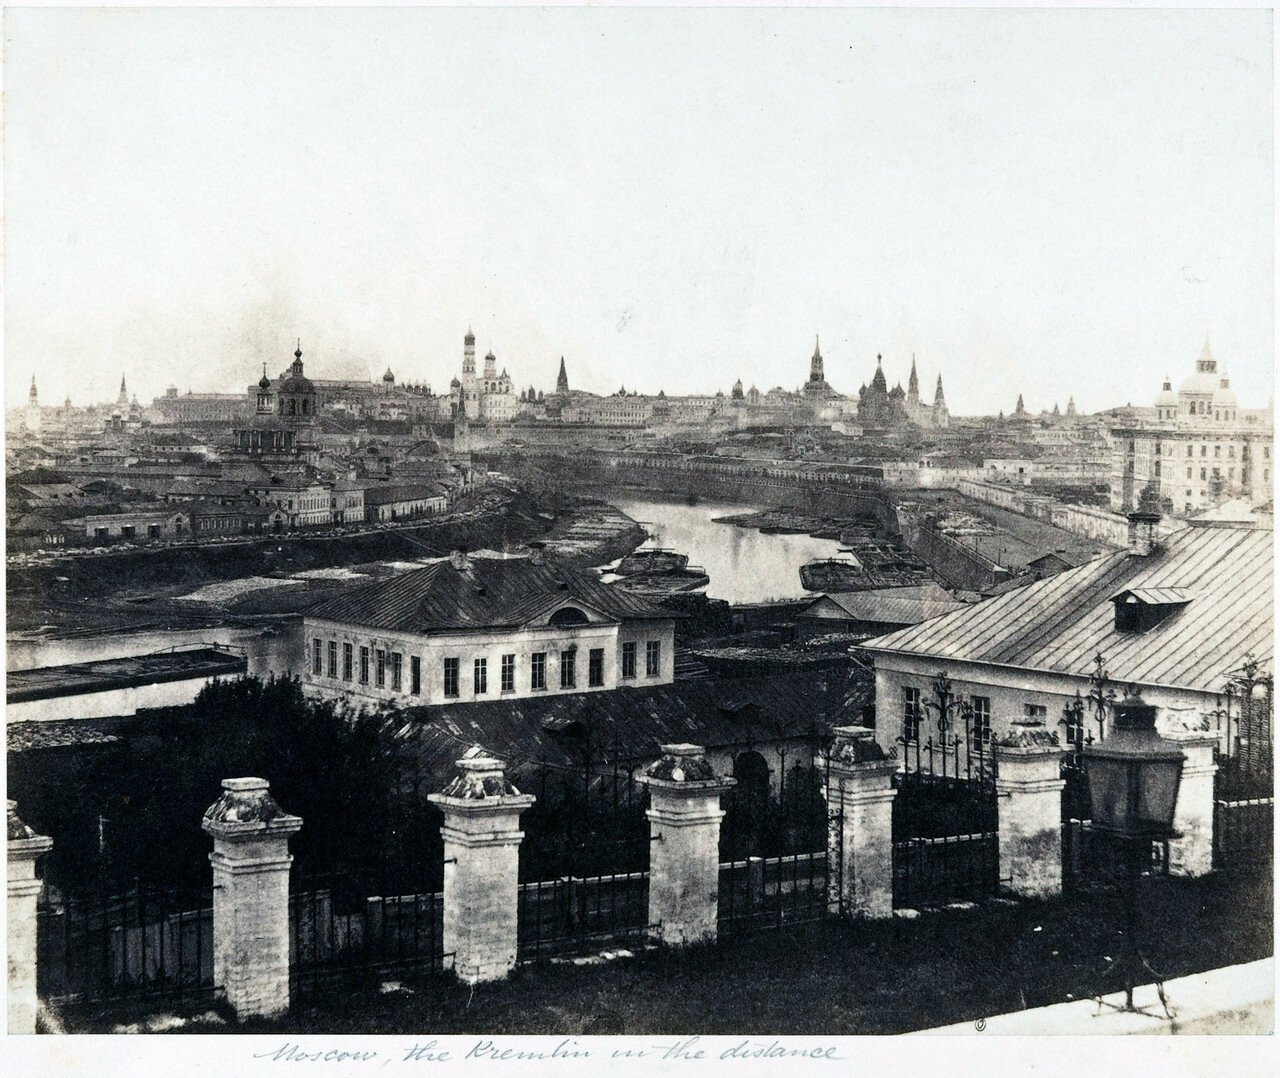 Moscow since Nicholas I Fenton, residence, Palace, von Schulz, Temporary, Kremlin, Panorama, Pokrovka, coronation, in front of the manor, Mobius, several, pictures, Church, Assumption, square, Devonshire, Theater, Lord